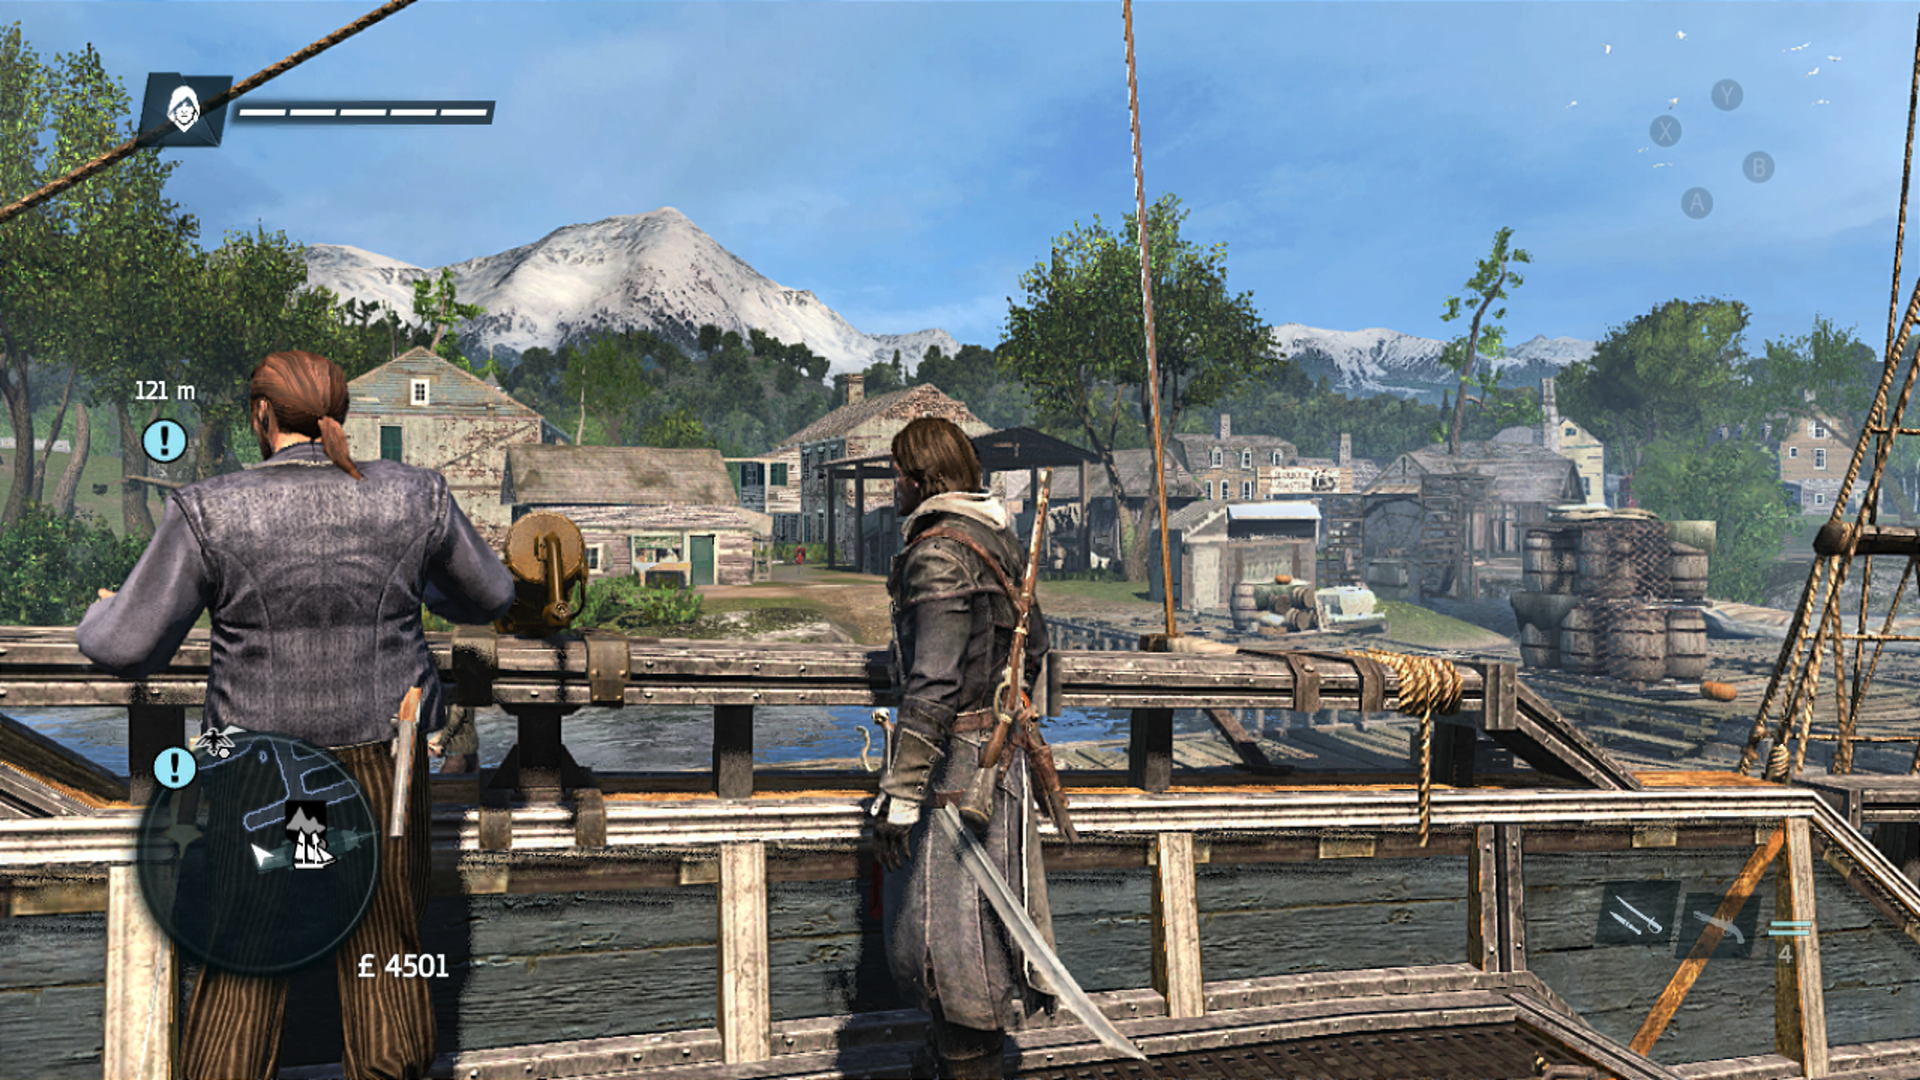 More on Assassin's Creed Rogue